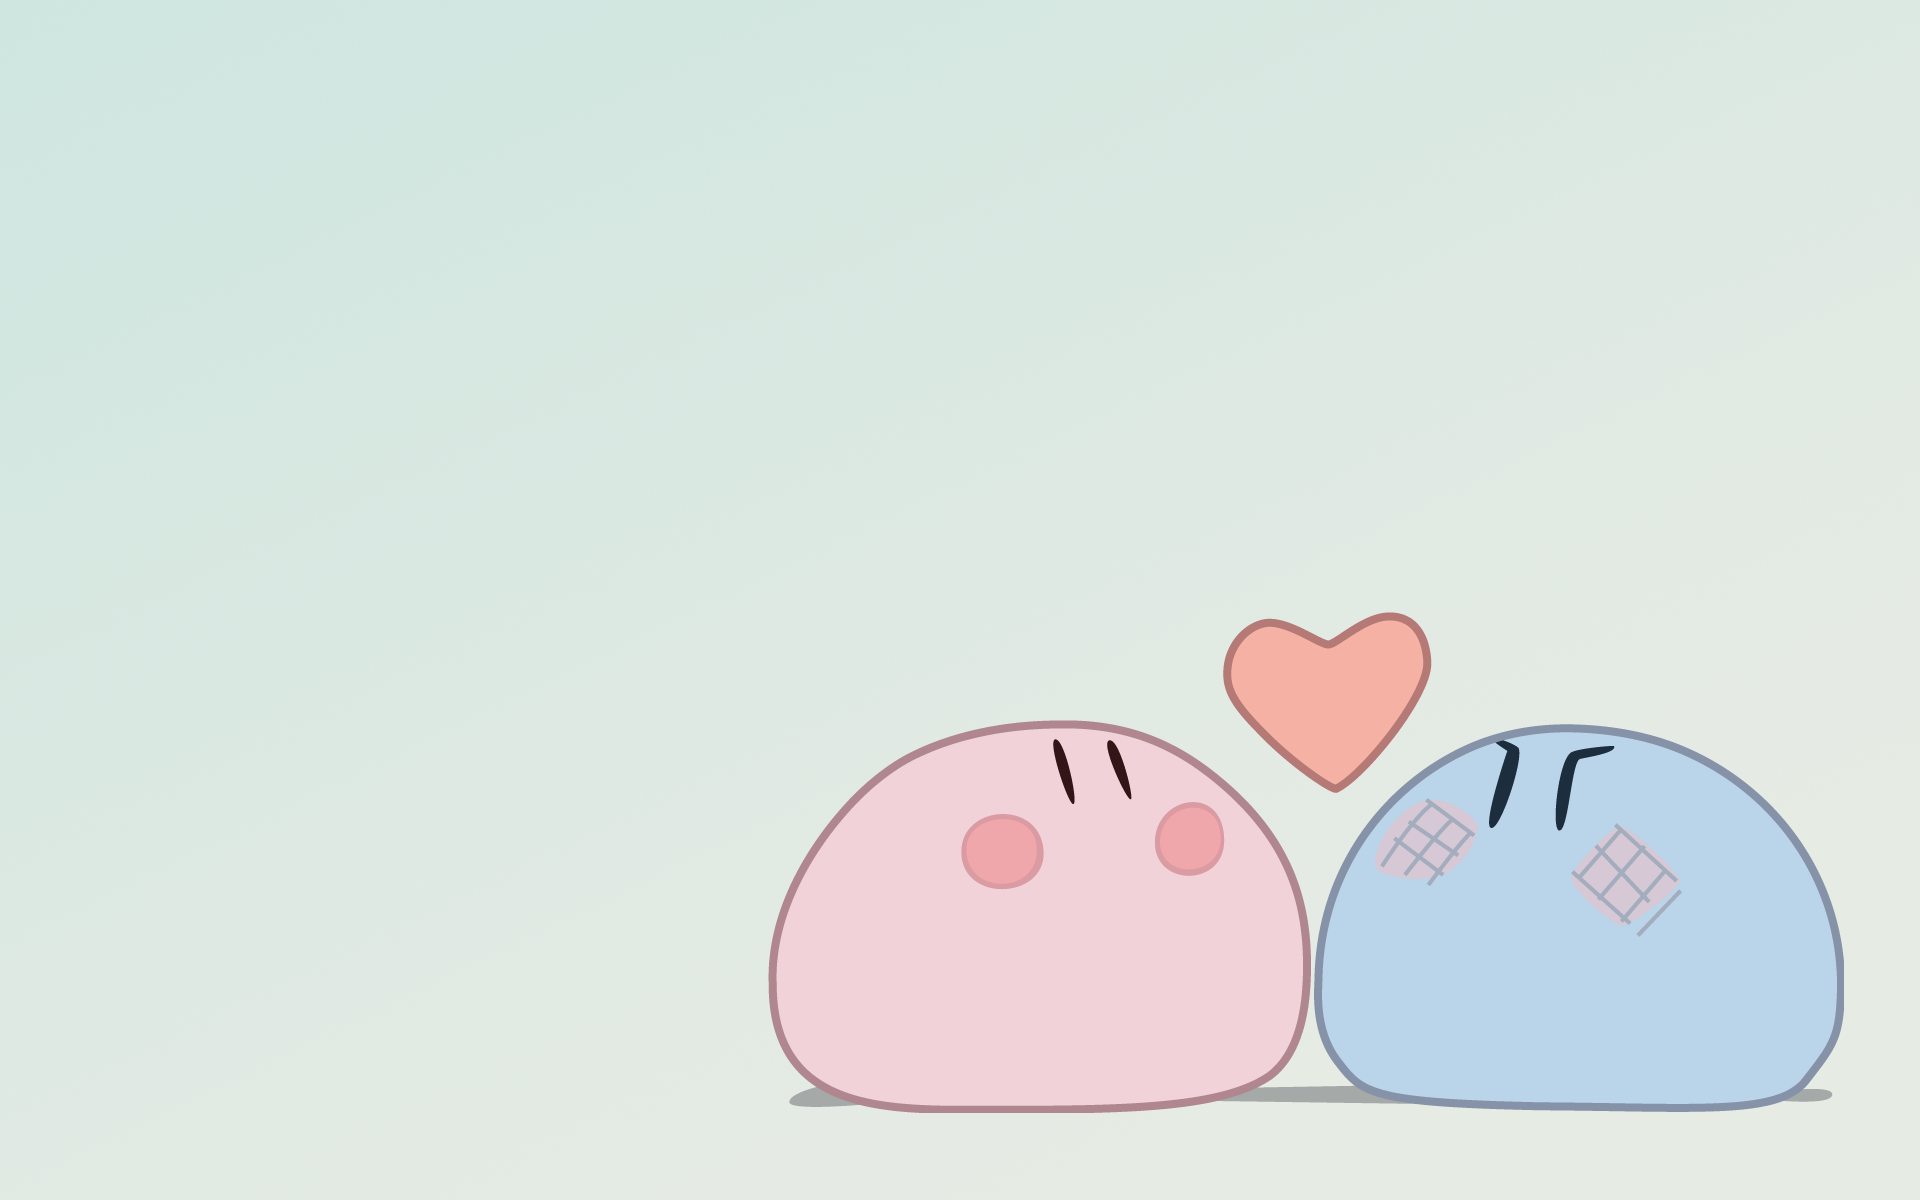 21 Dango Hd Wallpapers Background Images Wallpaper Abyss